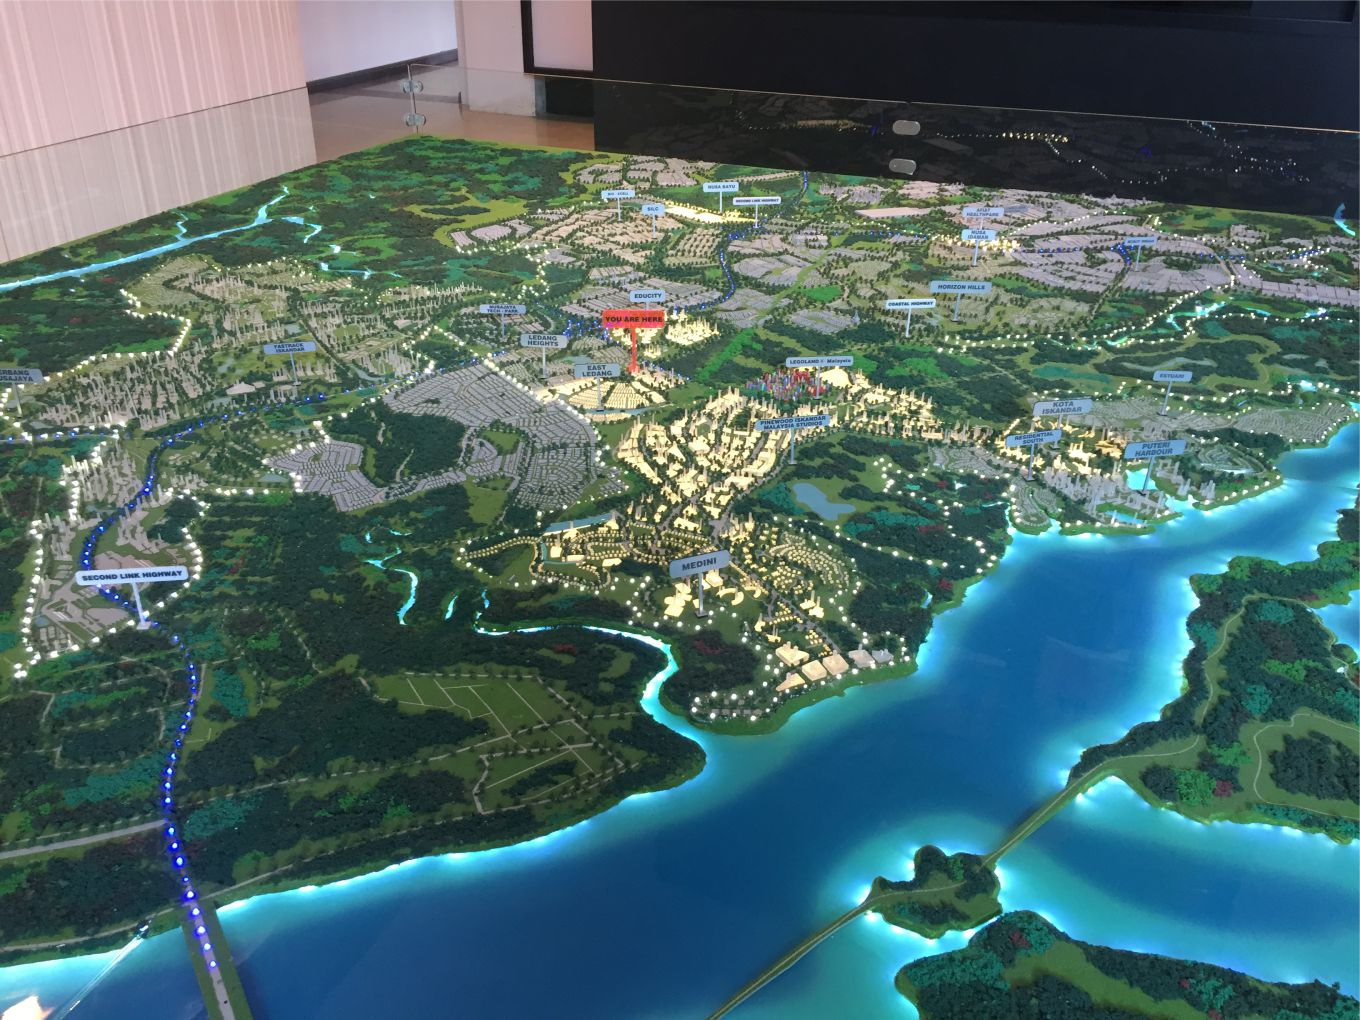 Masterplan Scale Model of Medini Iskandar, Nusajaya Scale 1:3000